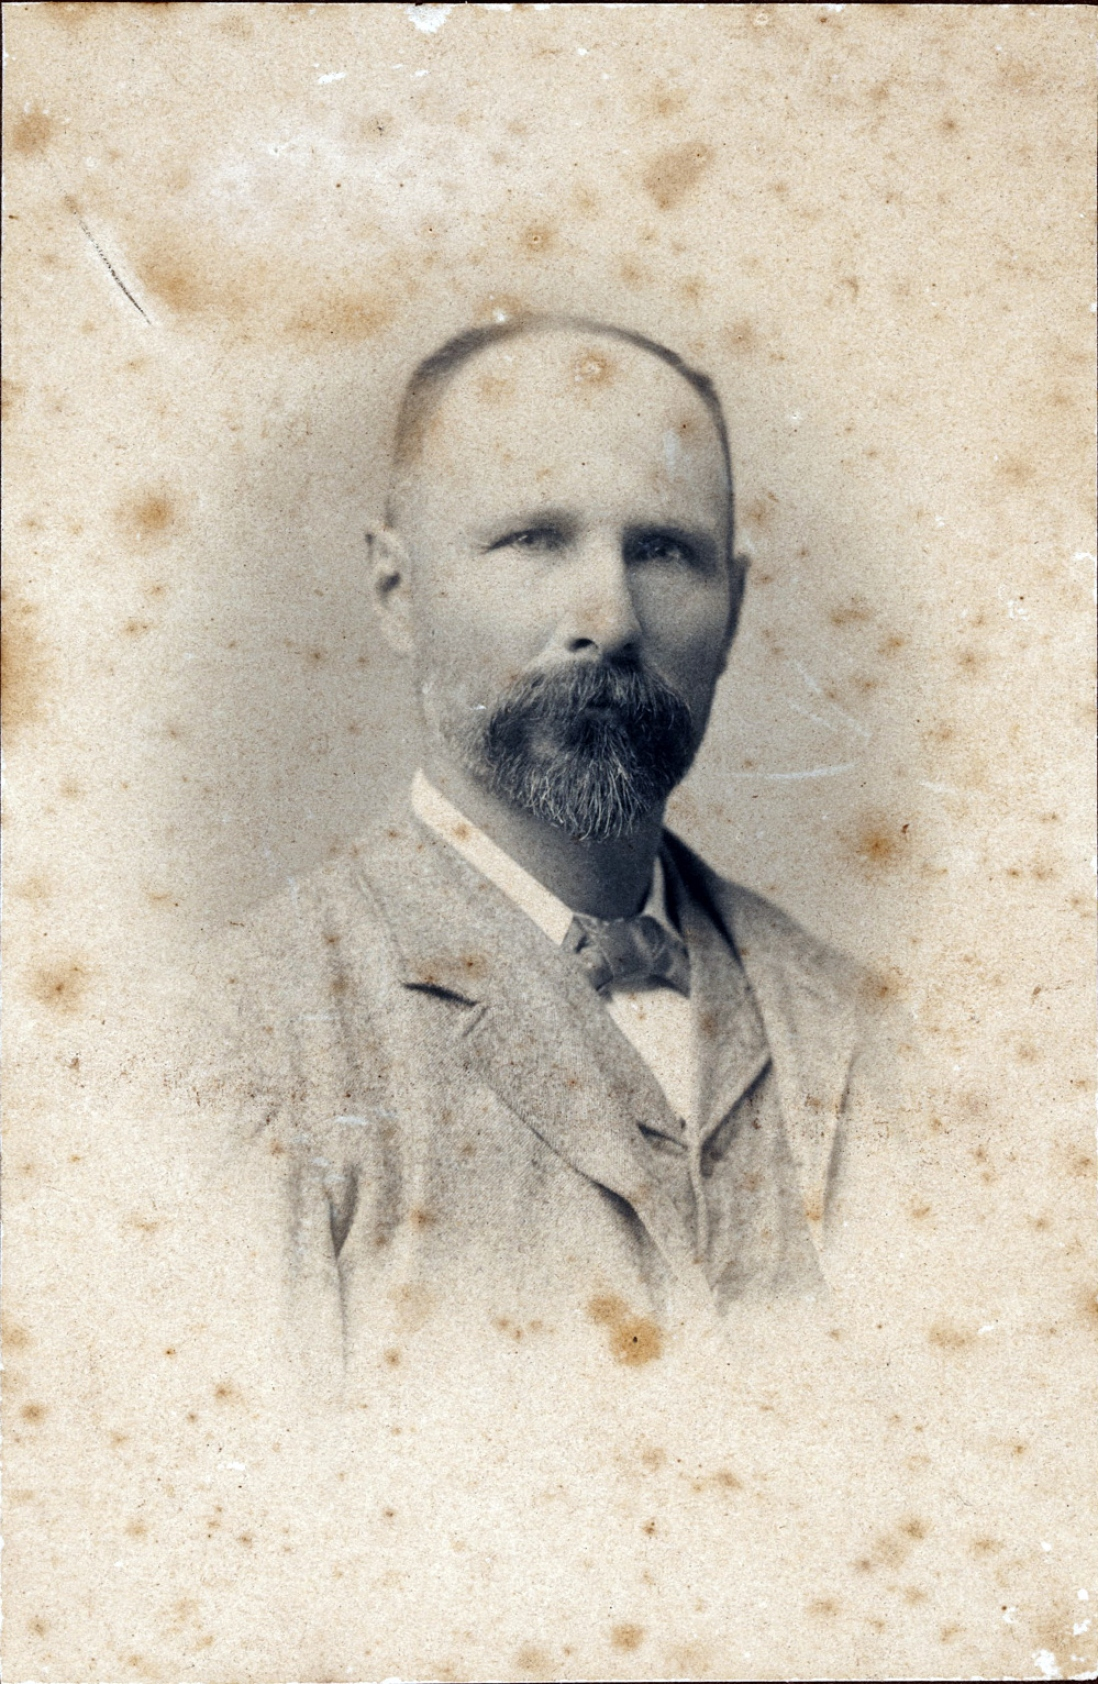 Discoloured and spotted black and white portrait of balding man with moustache and beard.